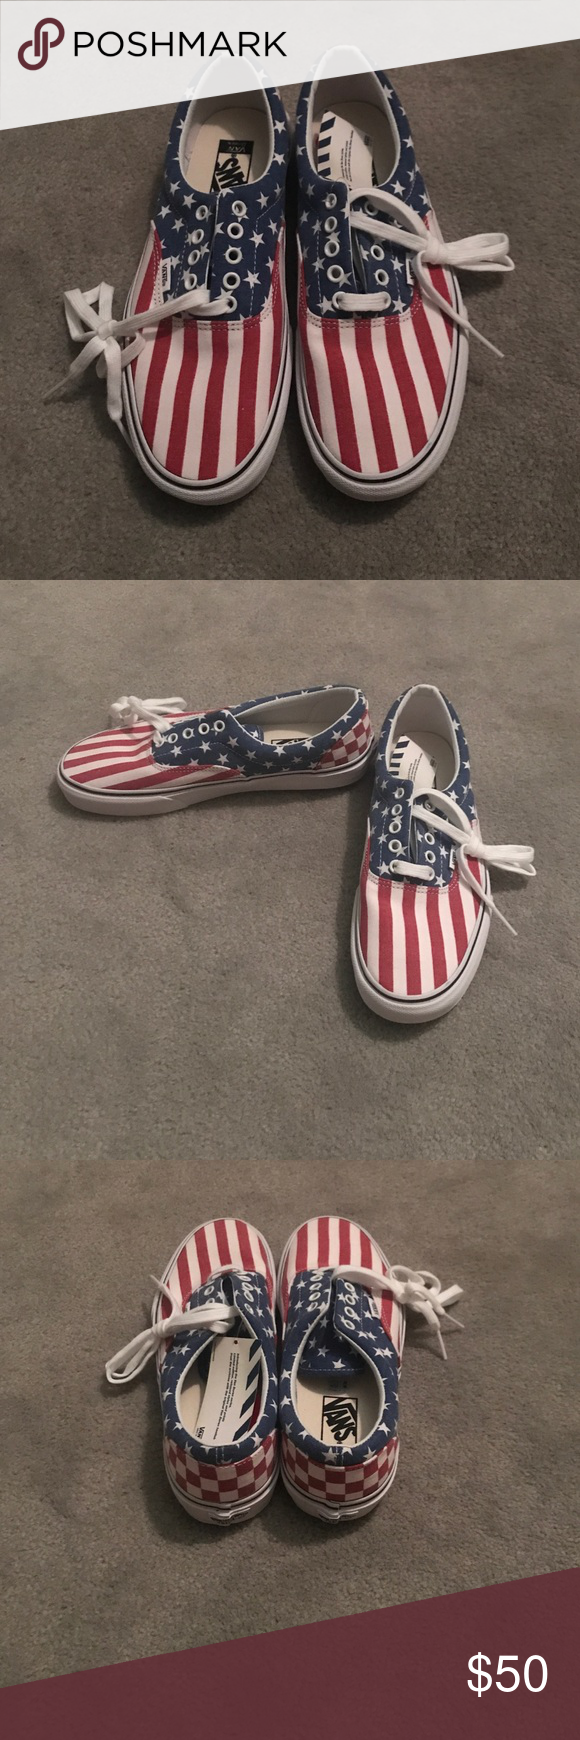 70537fb041bc NWT! American flag Vans size 10.5! Comes with box! Never worn. NWT ...